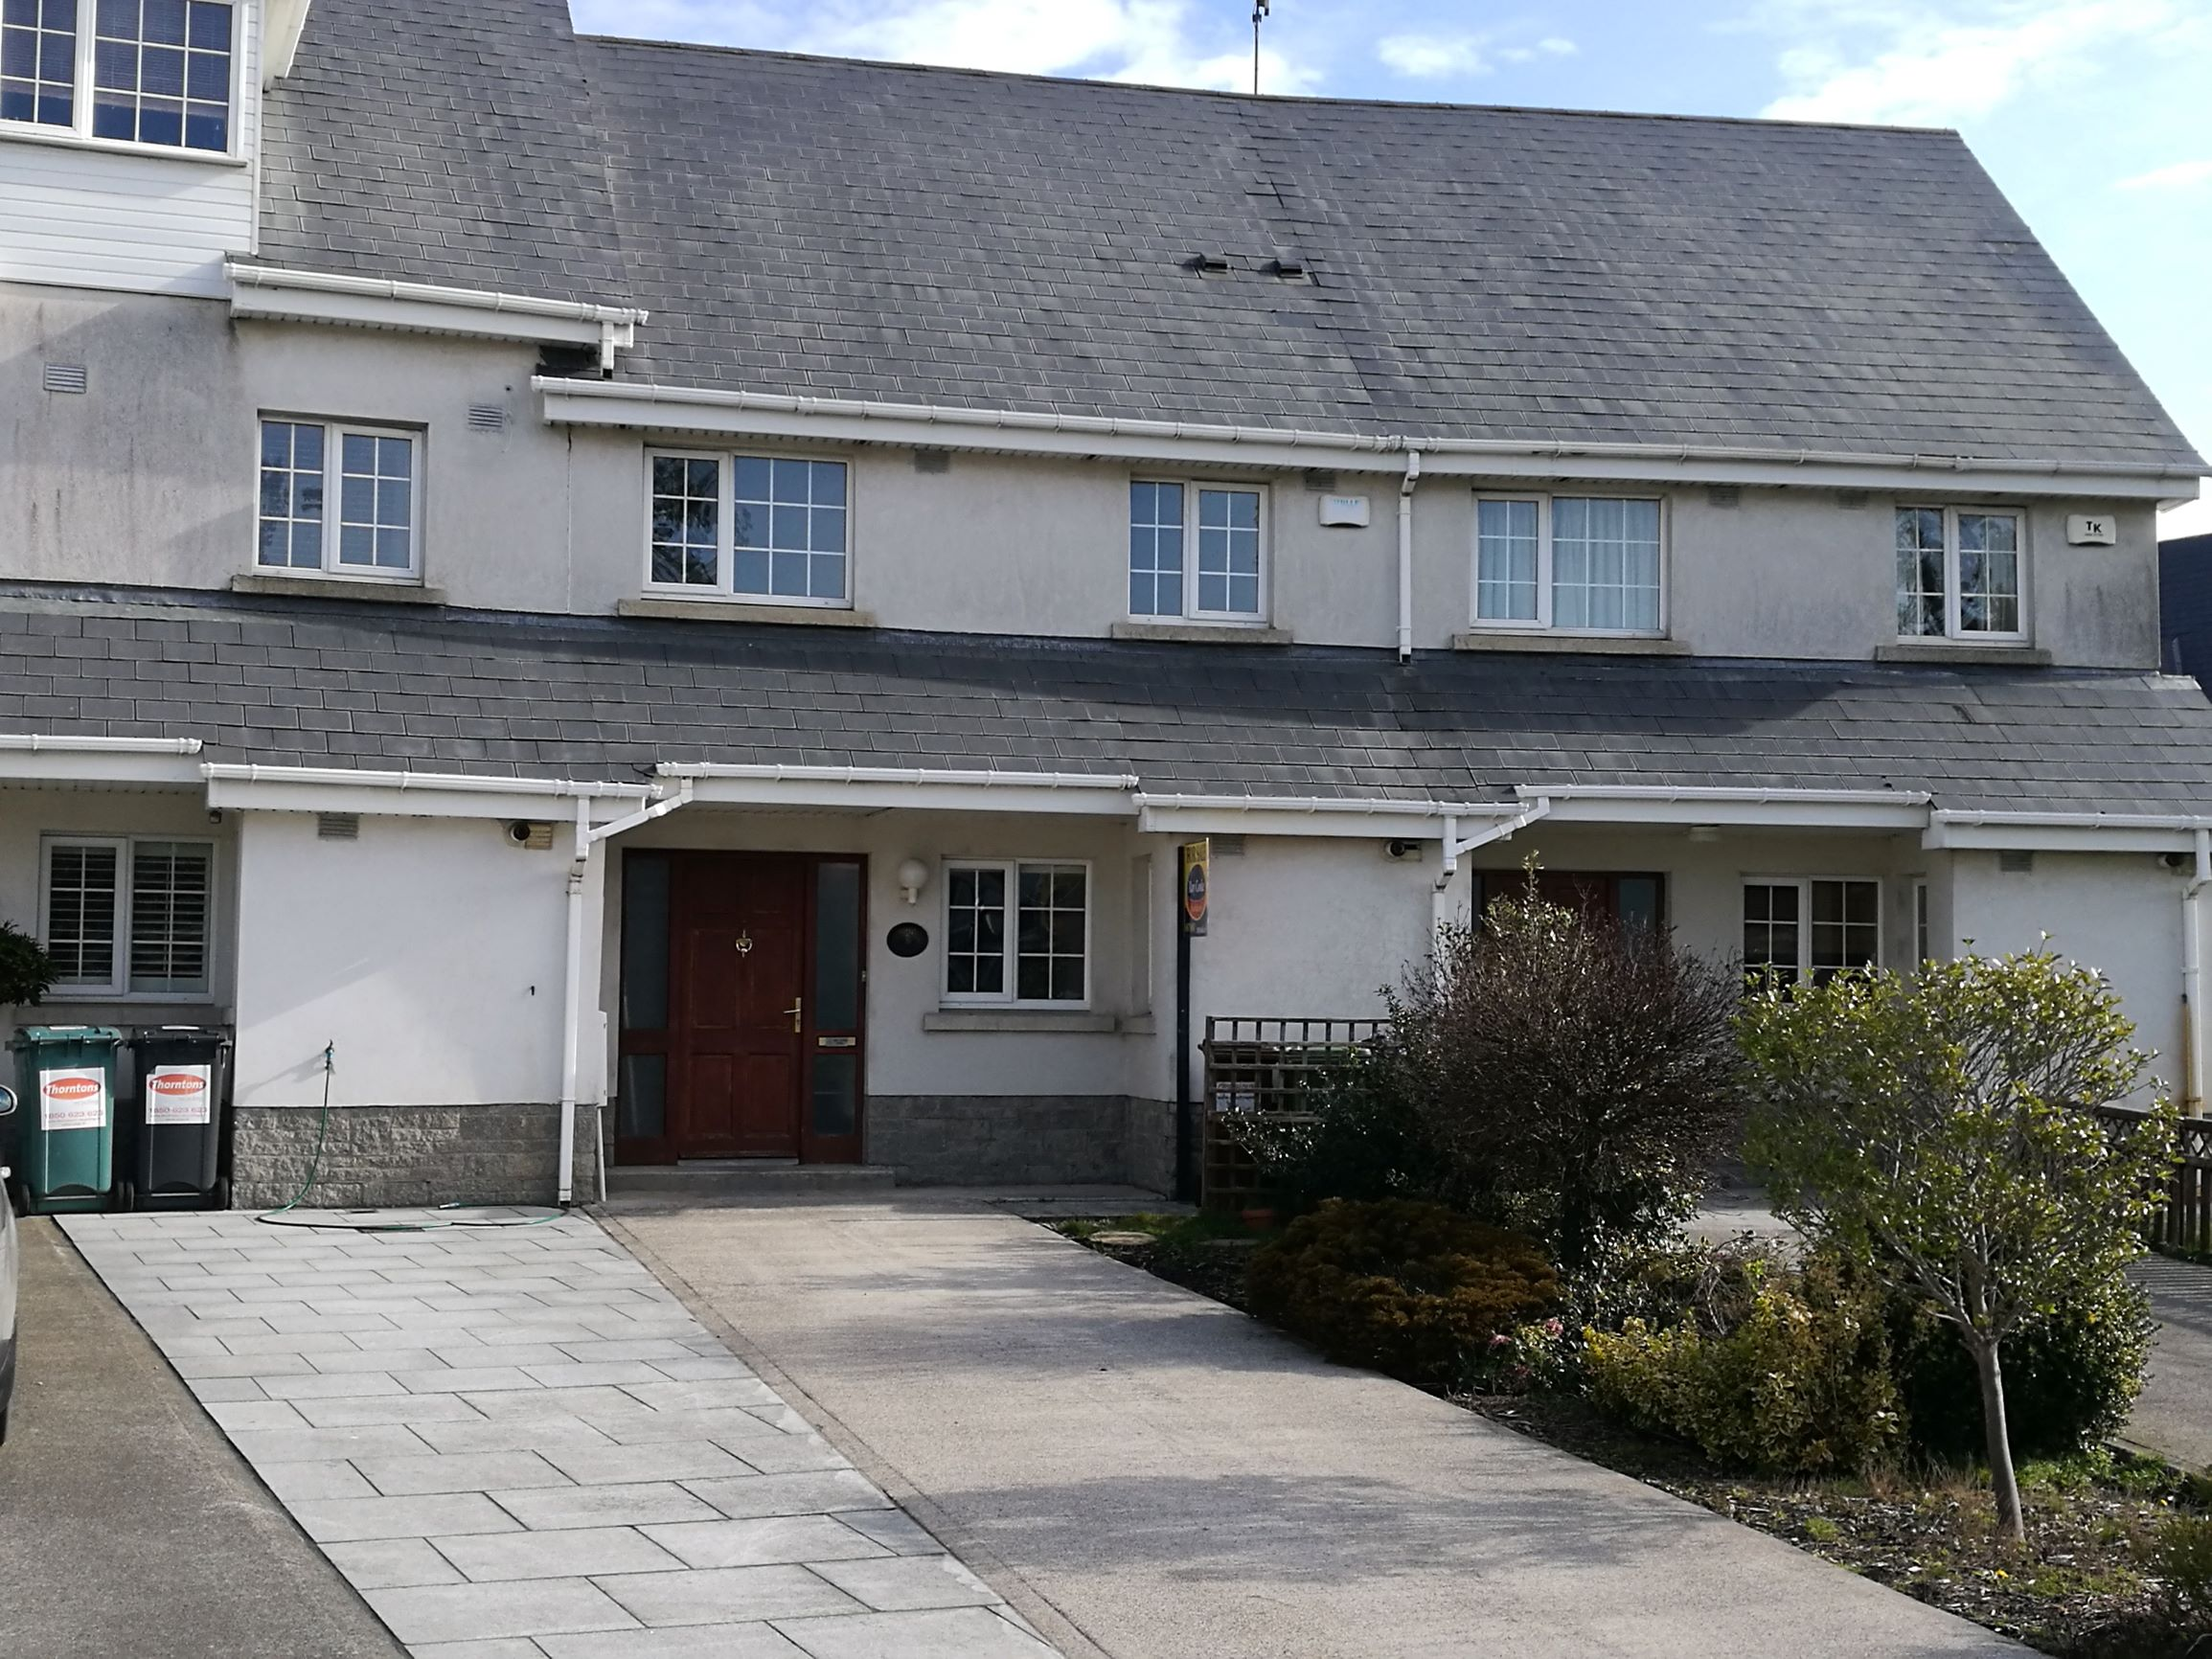 26 Brownsbarn Orchard, Kingswood, Citywest, Co. Dublin